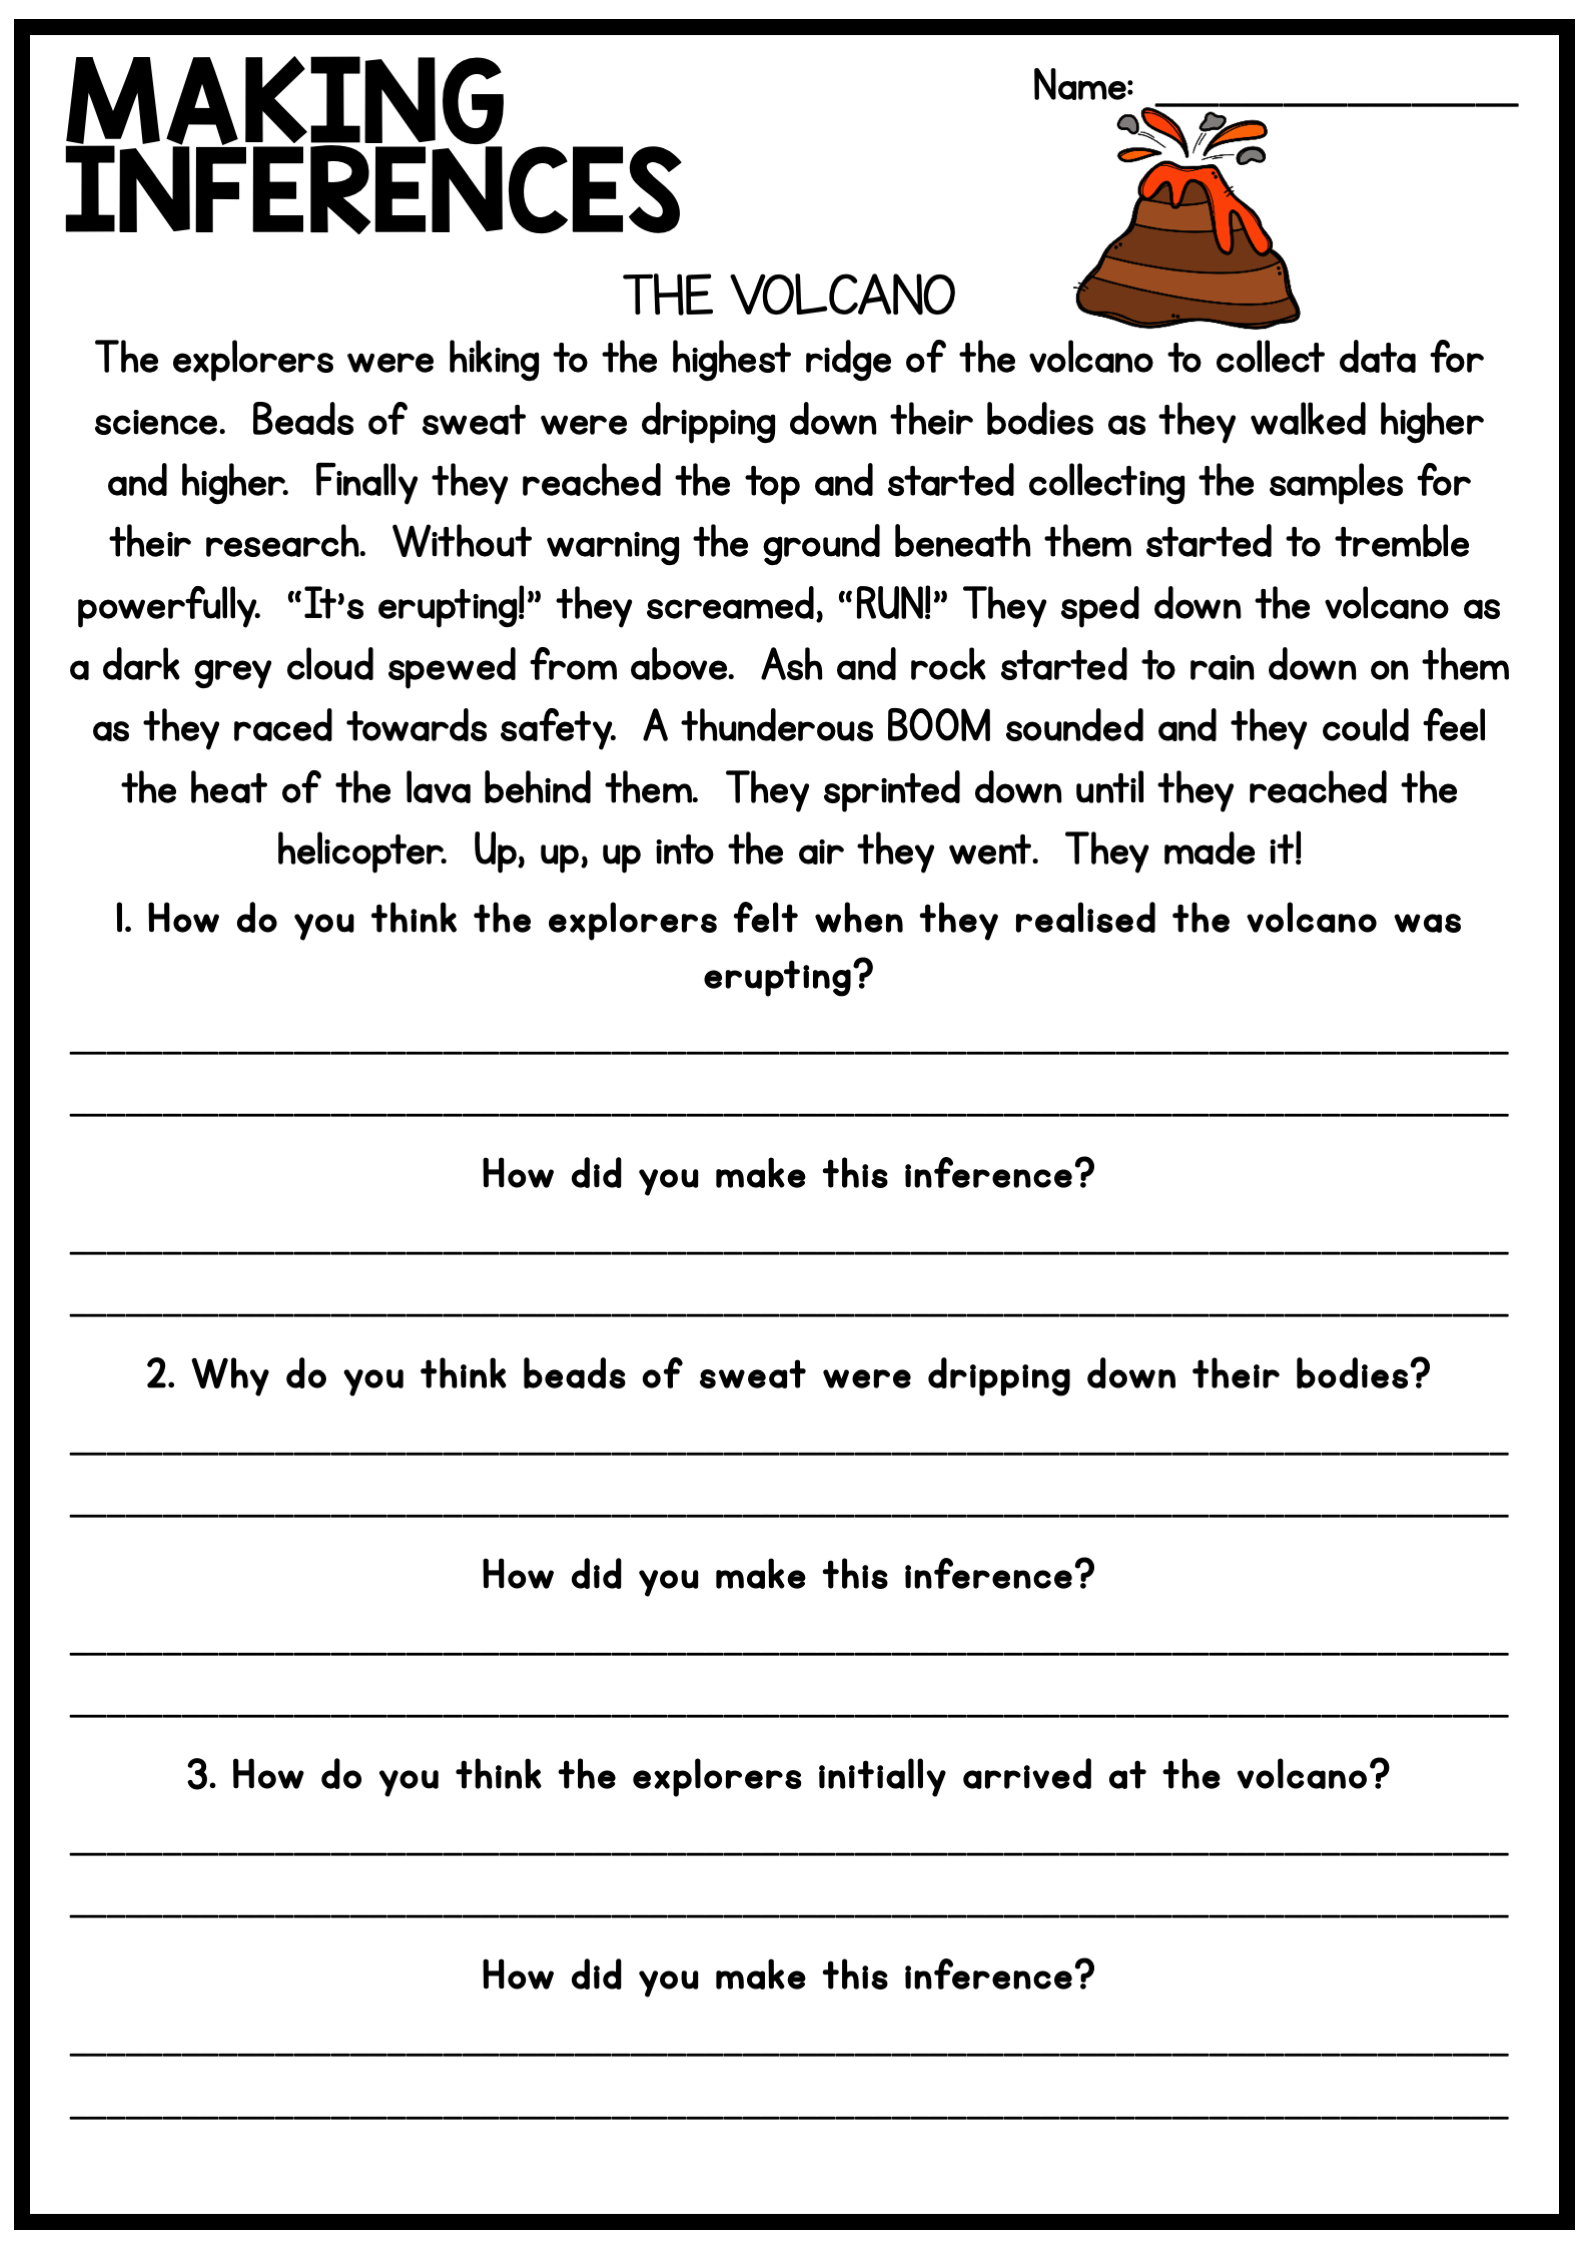 small resolution of Making Inferences and Drawing Conclusions - Reading Worksheet   5th grade  worksheets